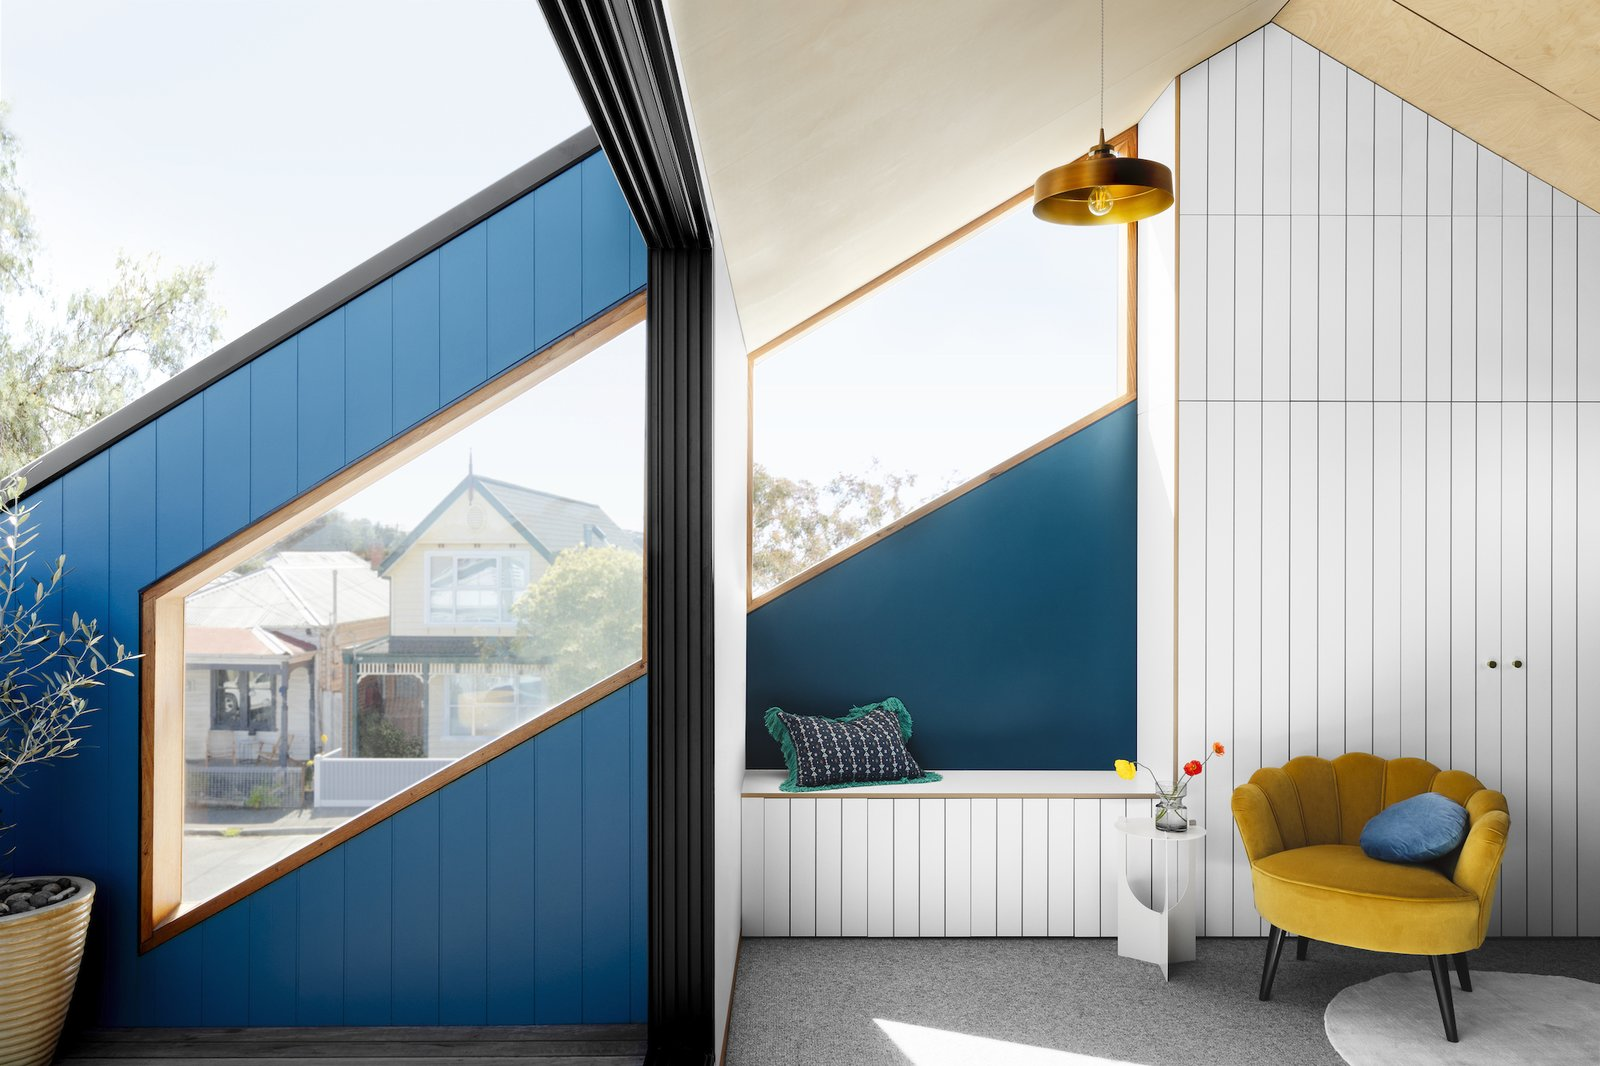 All of the northern windows follow the angle of the existing roofline and align with each other between the living room, deck, and stairwell. Full-height glass sliding doors open directly from the living room onto the deck.